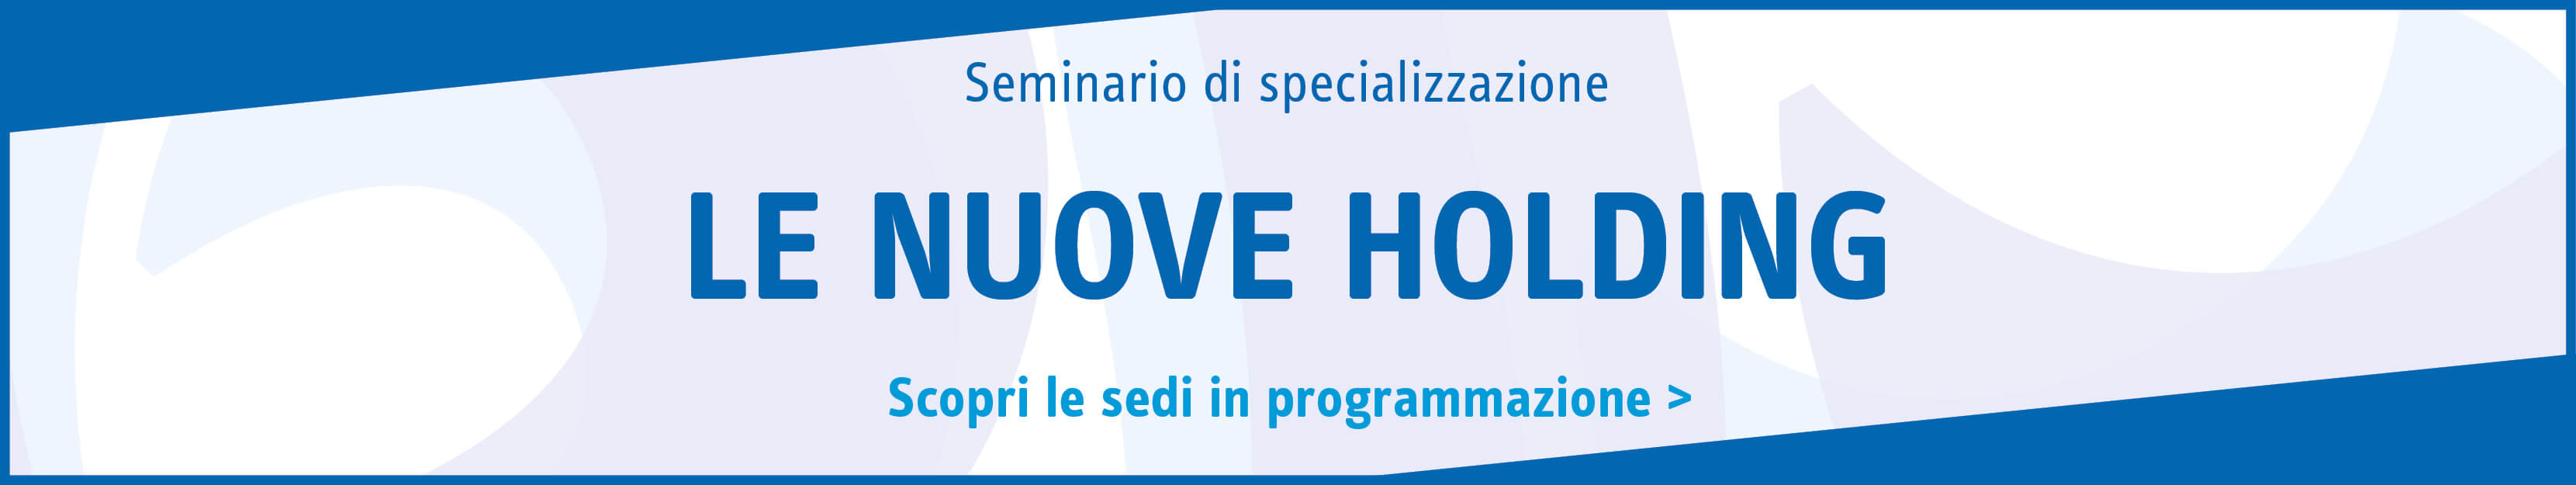 Le nuove holding